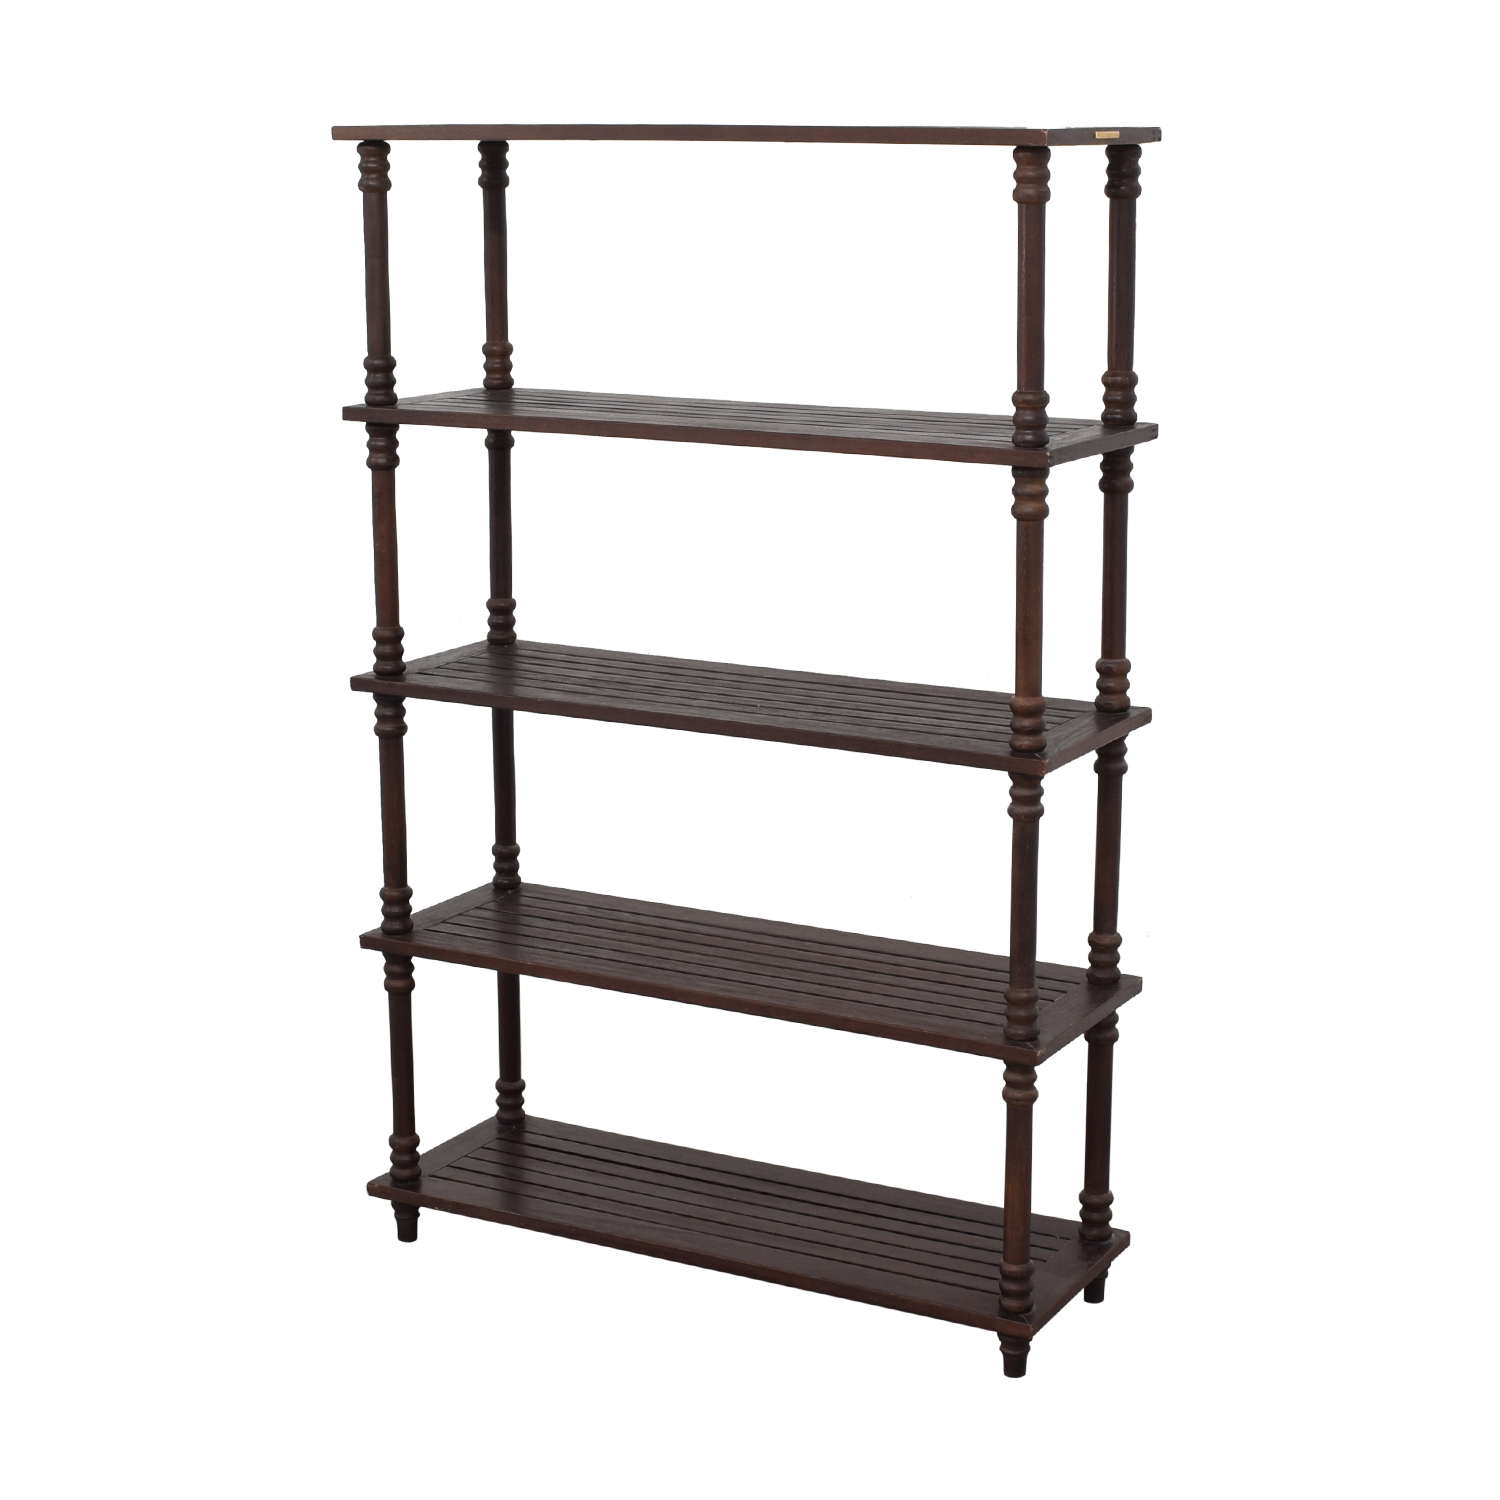 Ballard Designs Ballard Designs Floating Bookcase dark brown